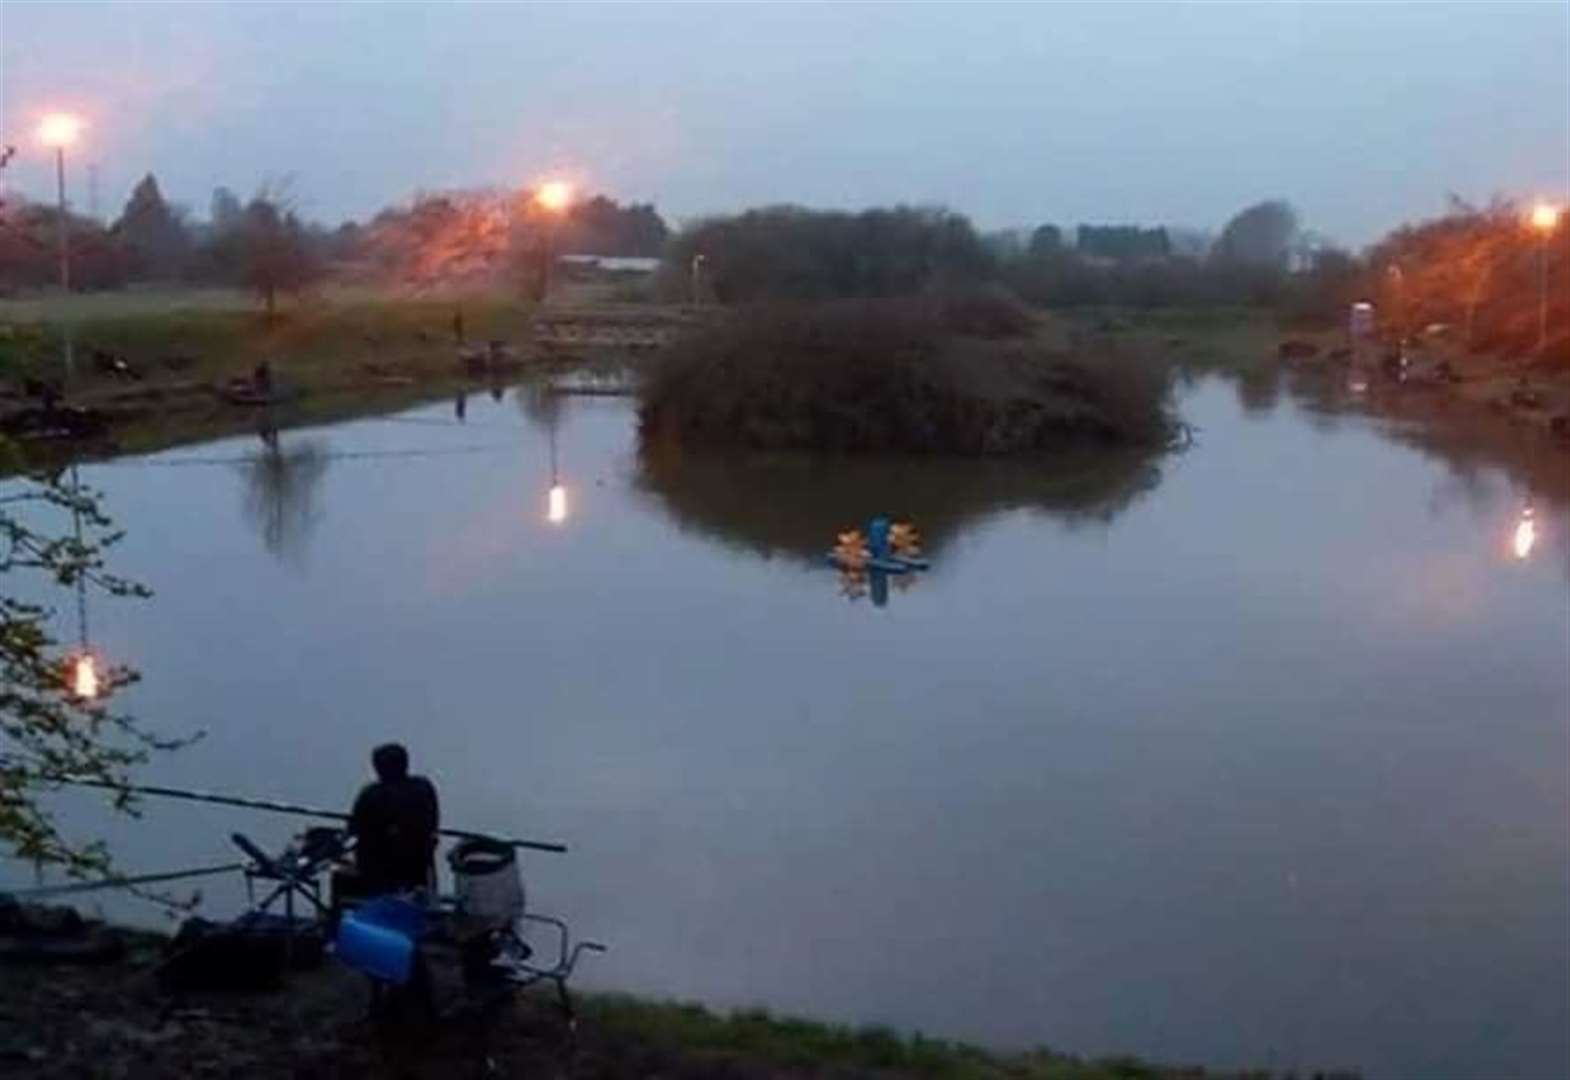 Free fishing offer for Fenland Citizen readers